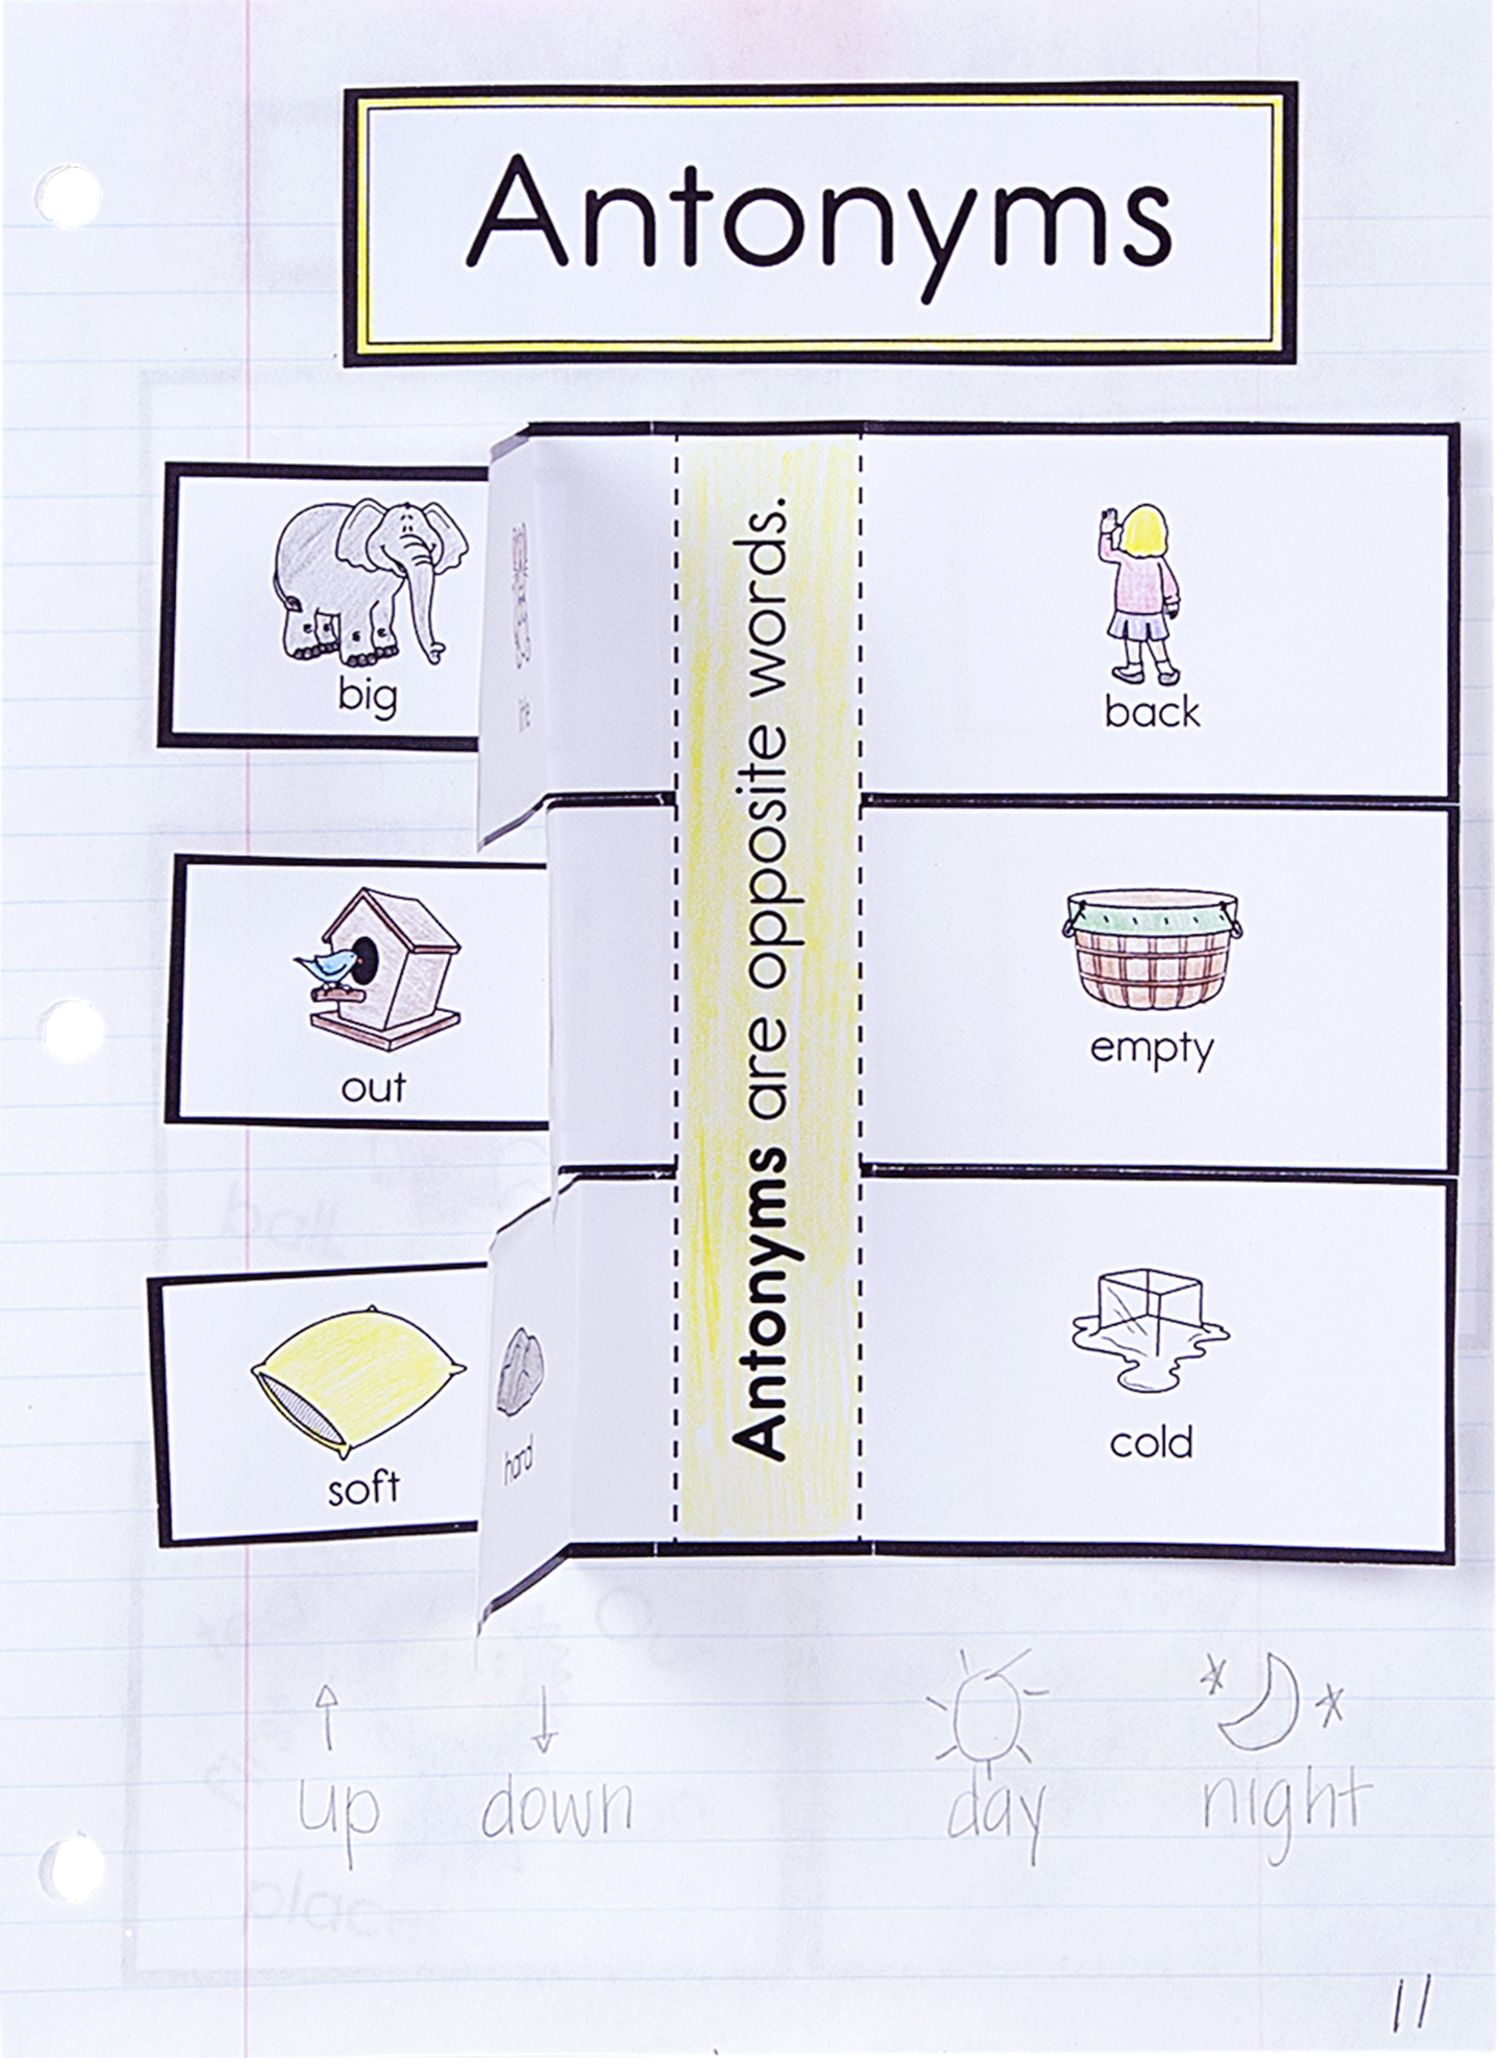 Fun activity for students to learn about antonyms from our new